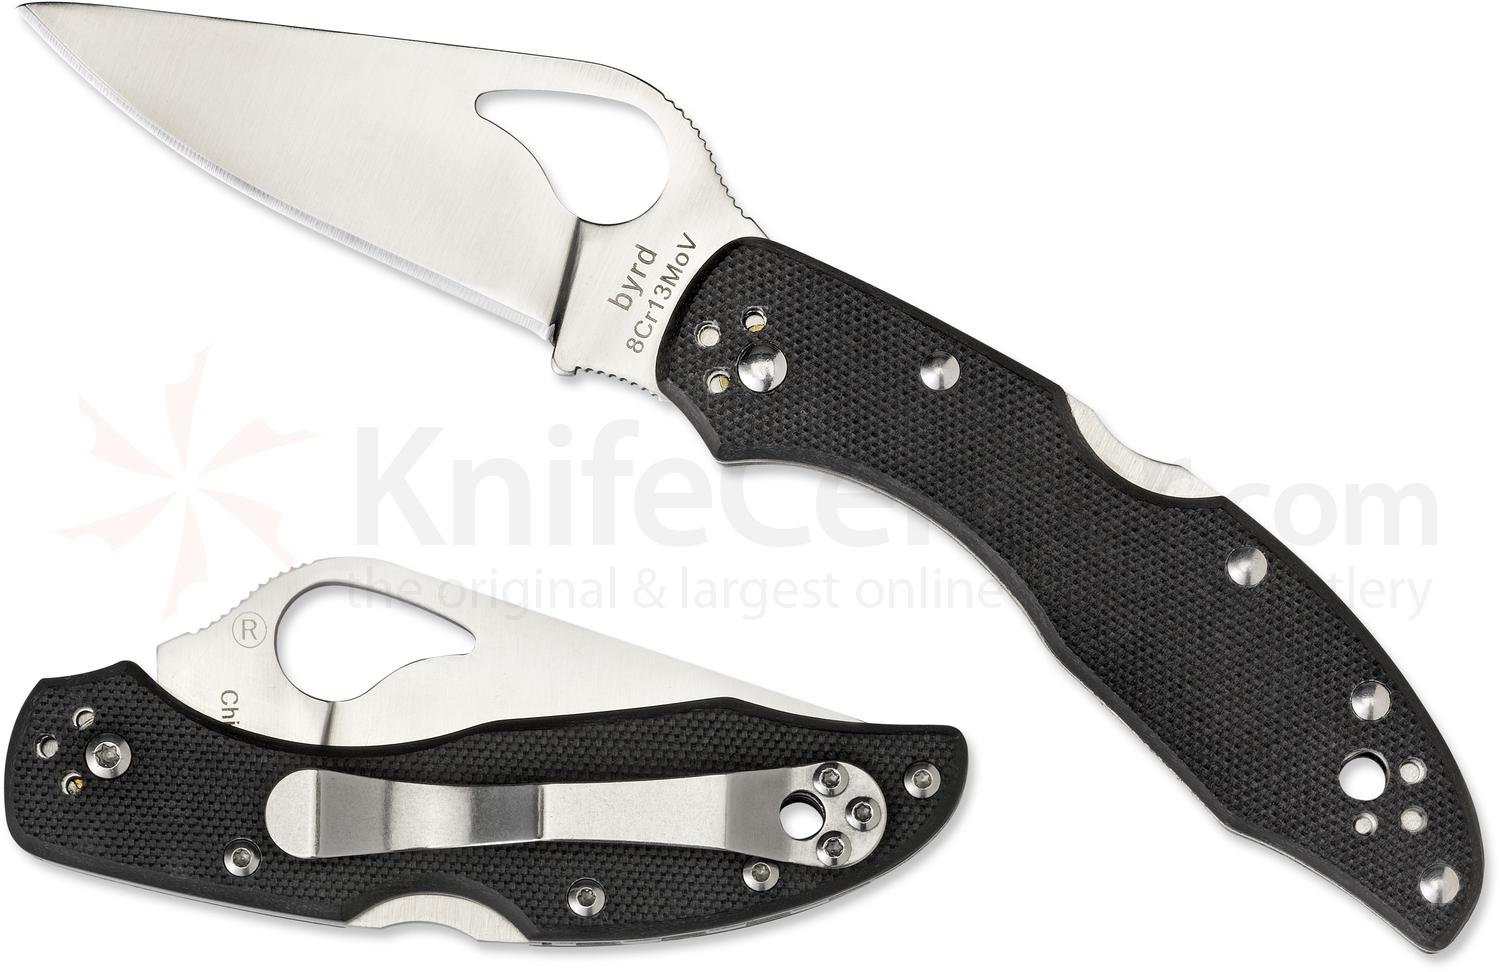 Spyderco Byrd BY04GP2 Meadowlark 2 Folding Knife 2-7/8 inch Plain Flat-Ground Blade, G10 Handles